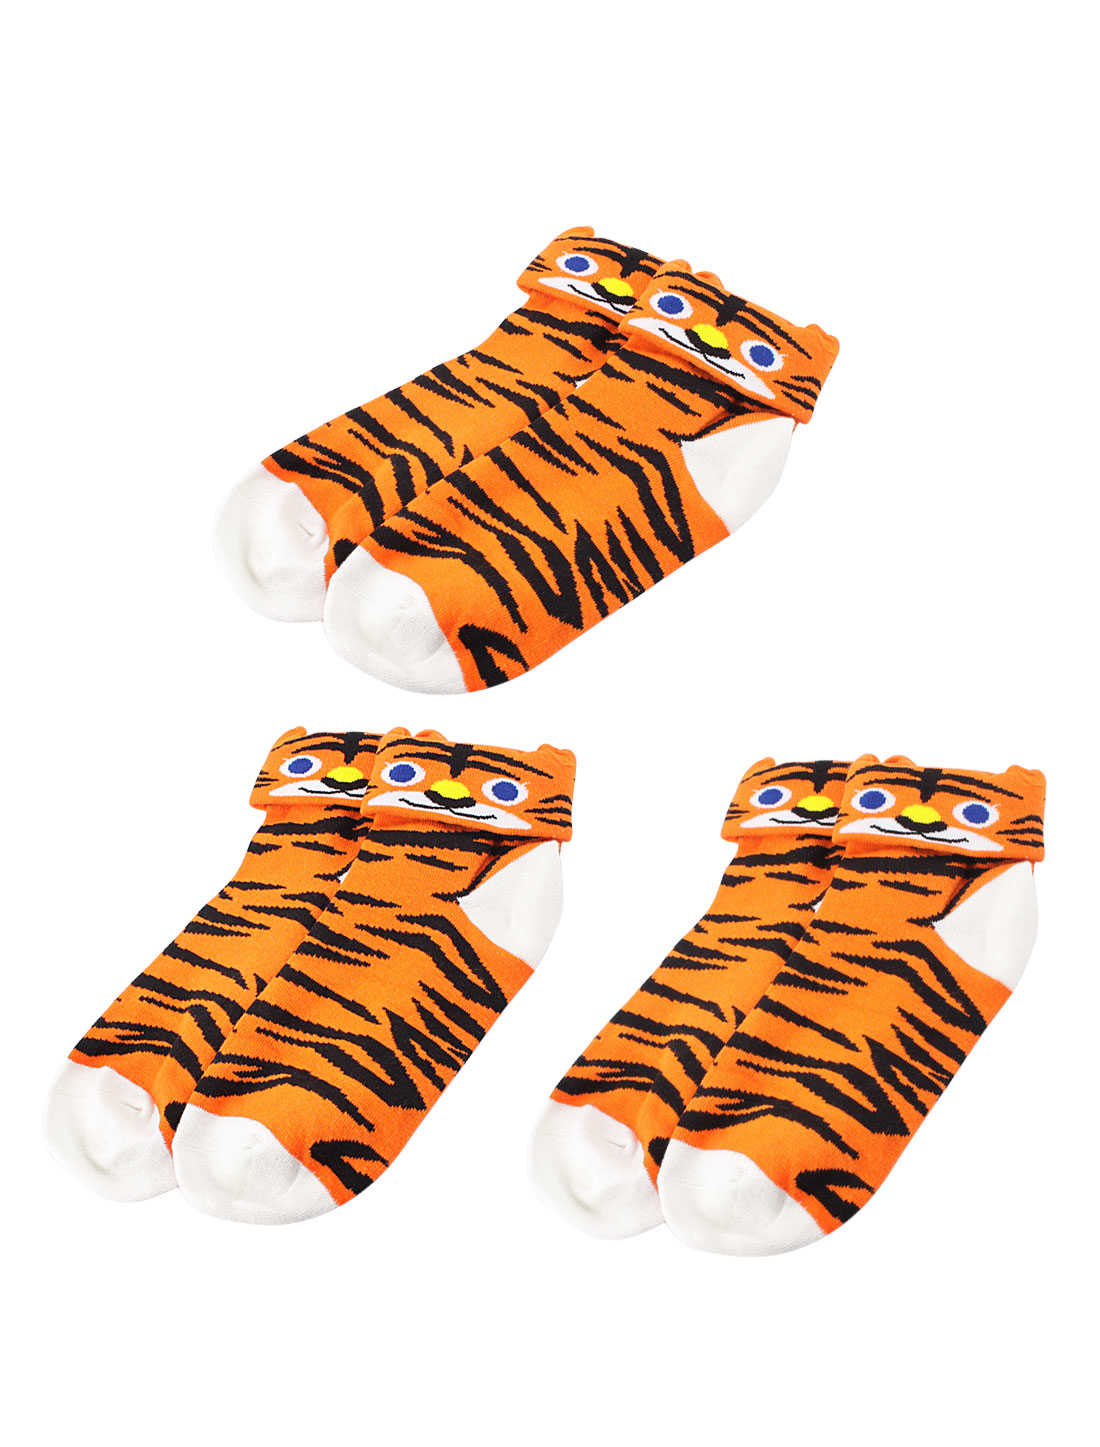 Woman Tiger Pattern Stretch Cuff Crew Ankle High Casual Socks Orange 3 Pairs